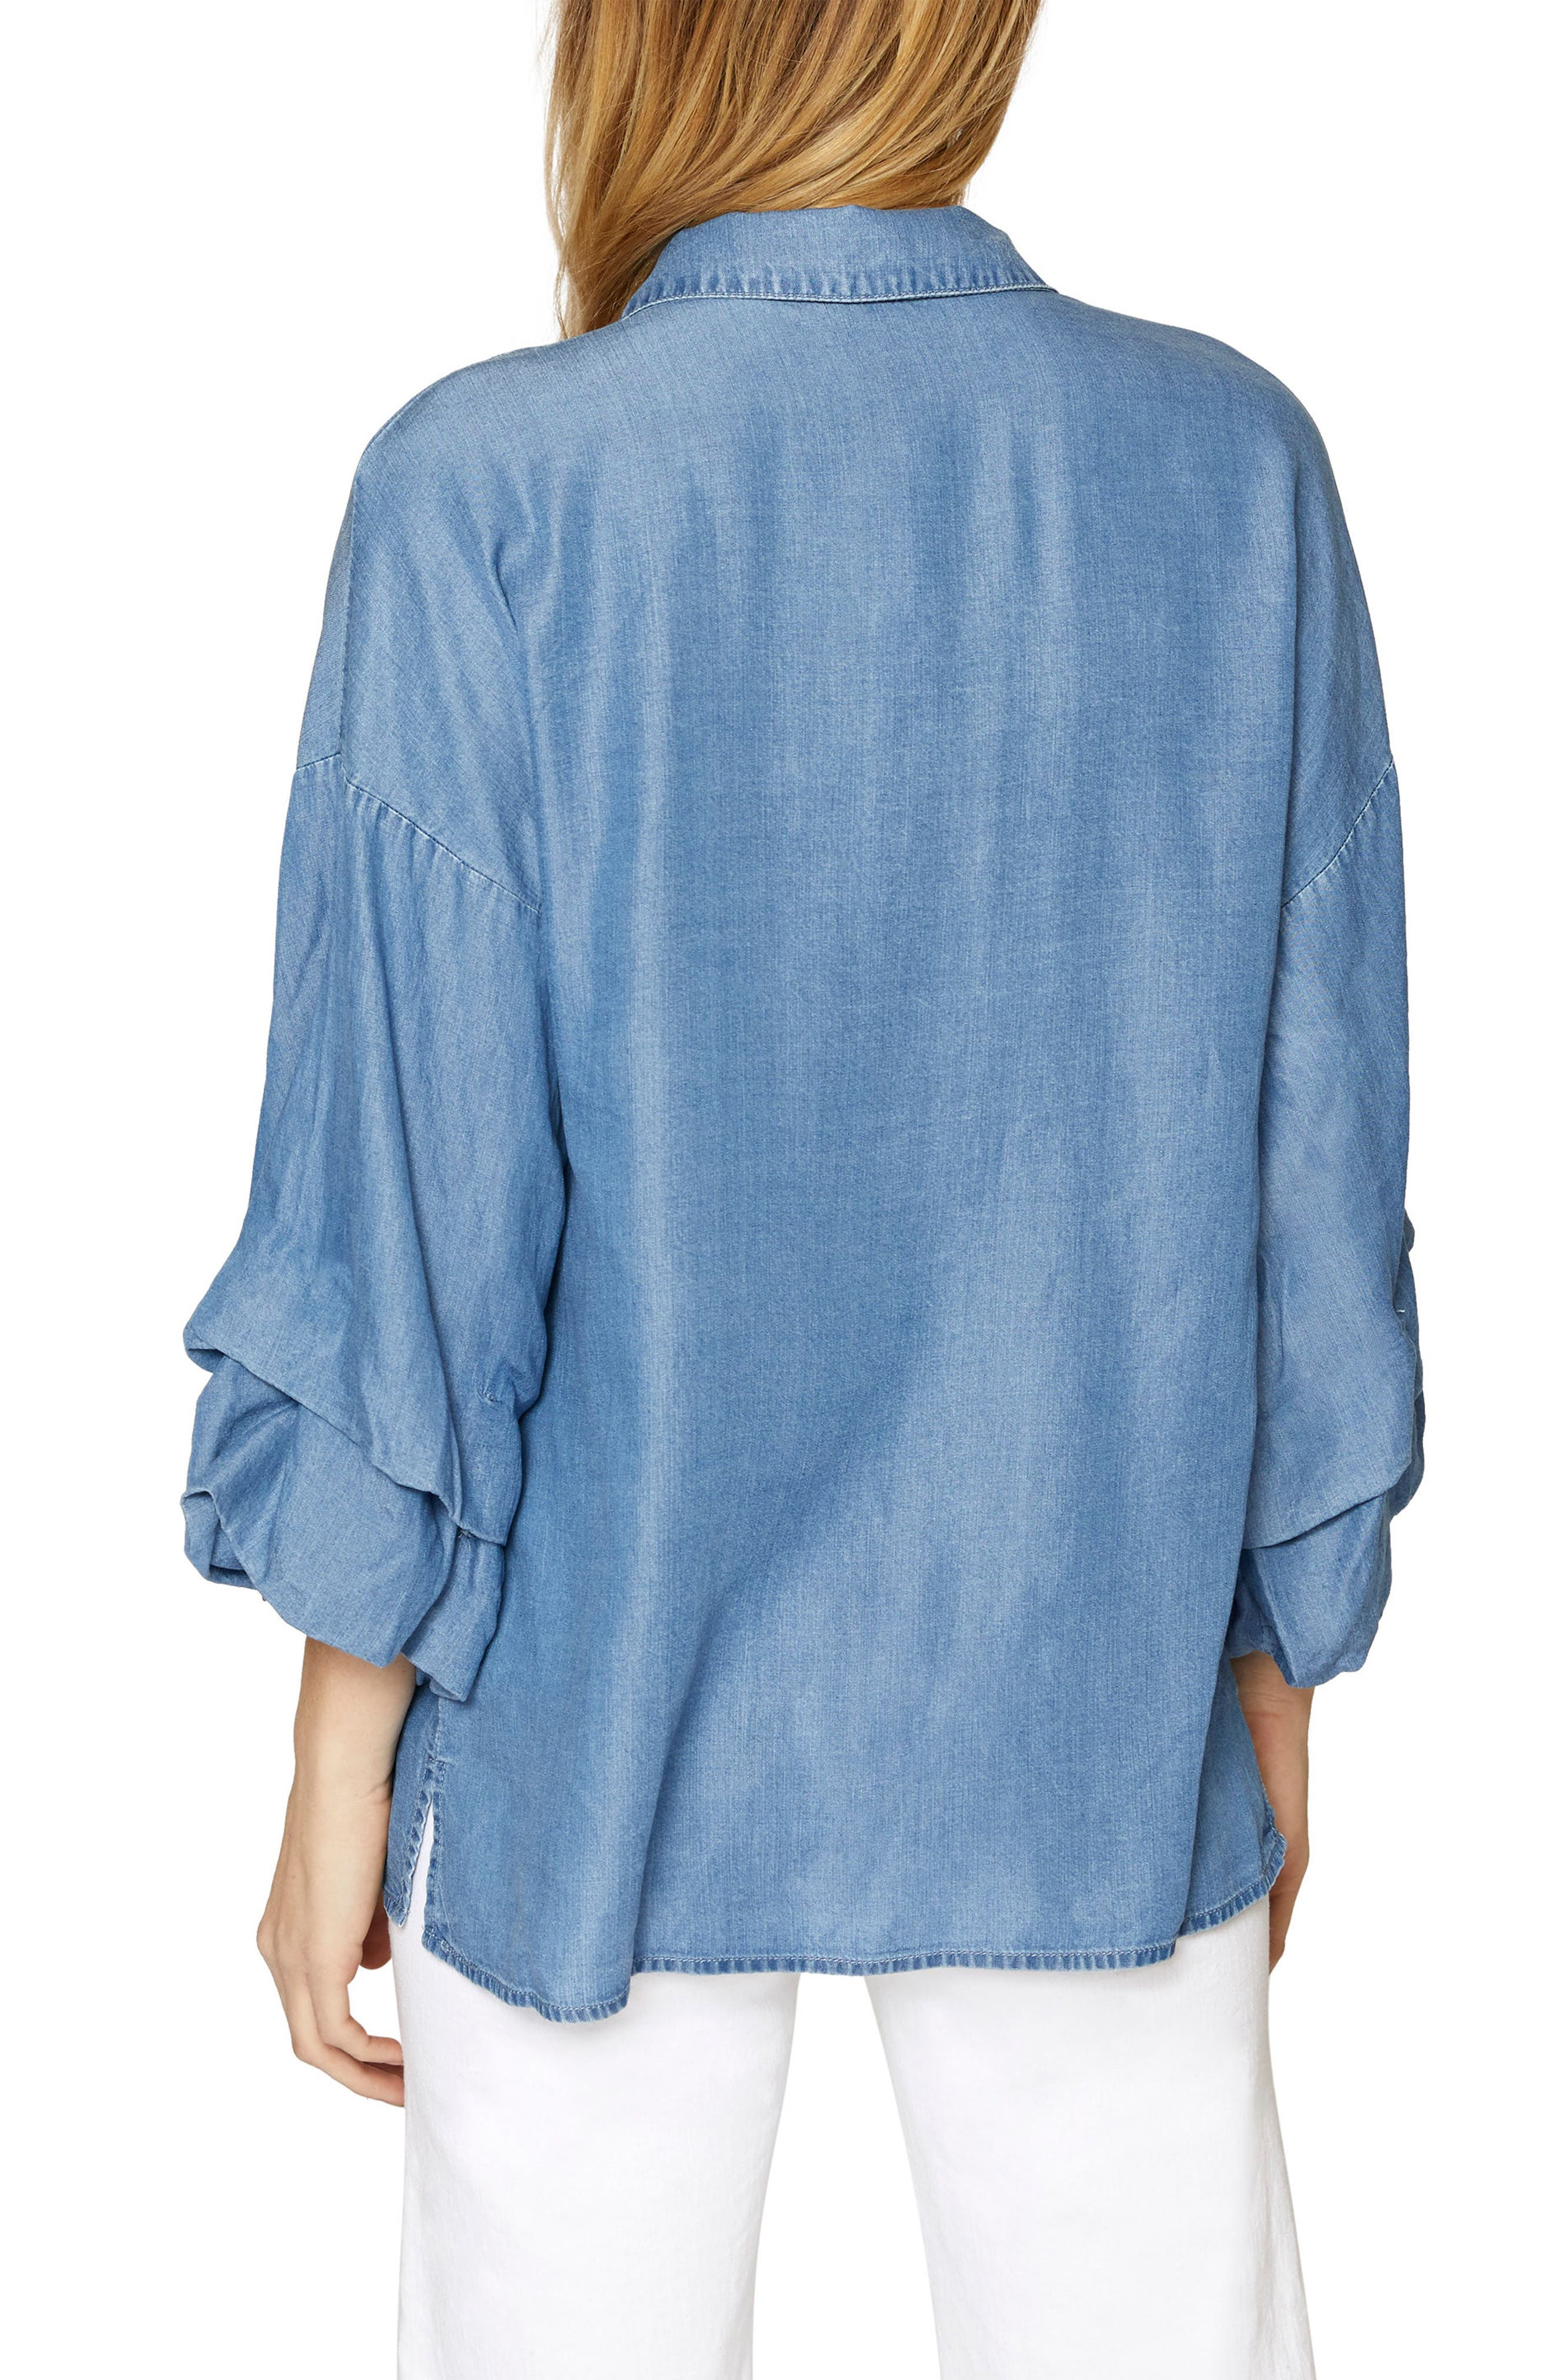 Brynn Gathered Sleeve Shirt,                             Alternate thumbnail 2, color,                             Sky Wash